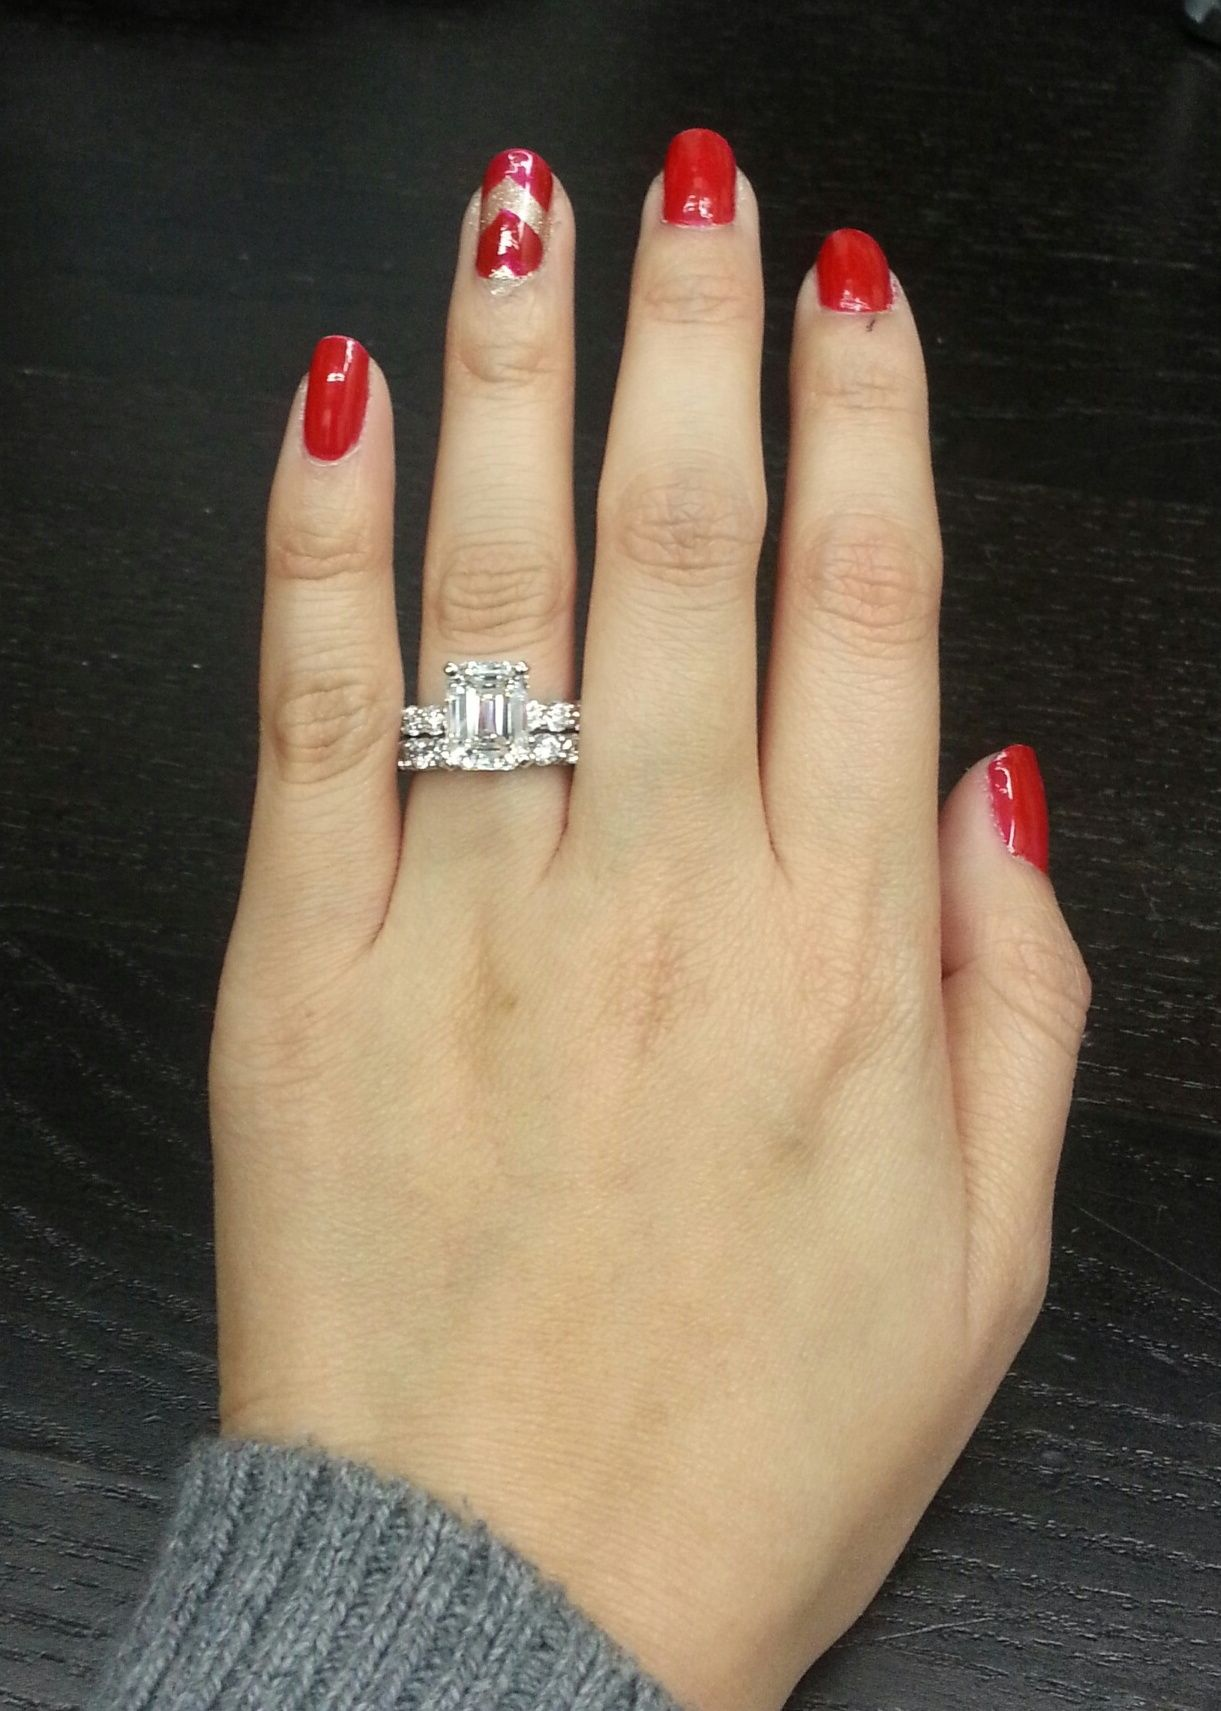 A Hot Red To Match Ct Emerald Cut Diamond Engagement Ring With Matching Shared Prong Wedding Band